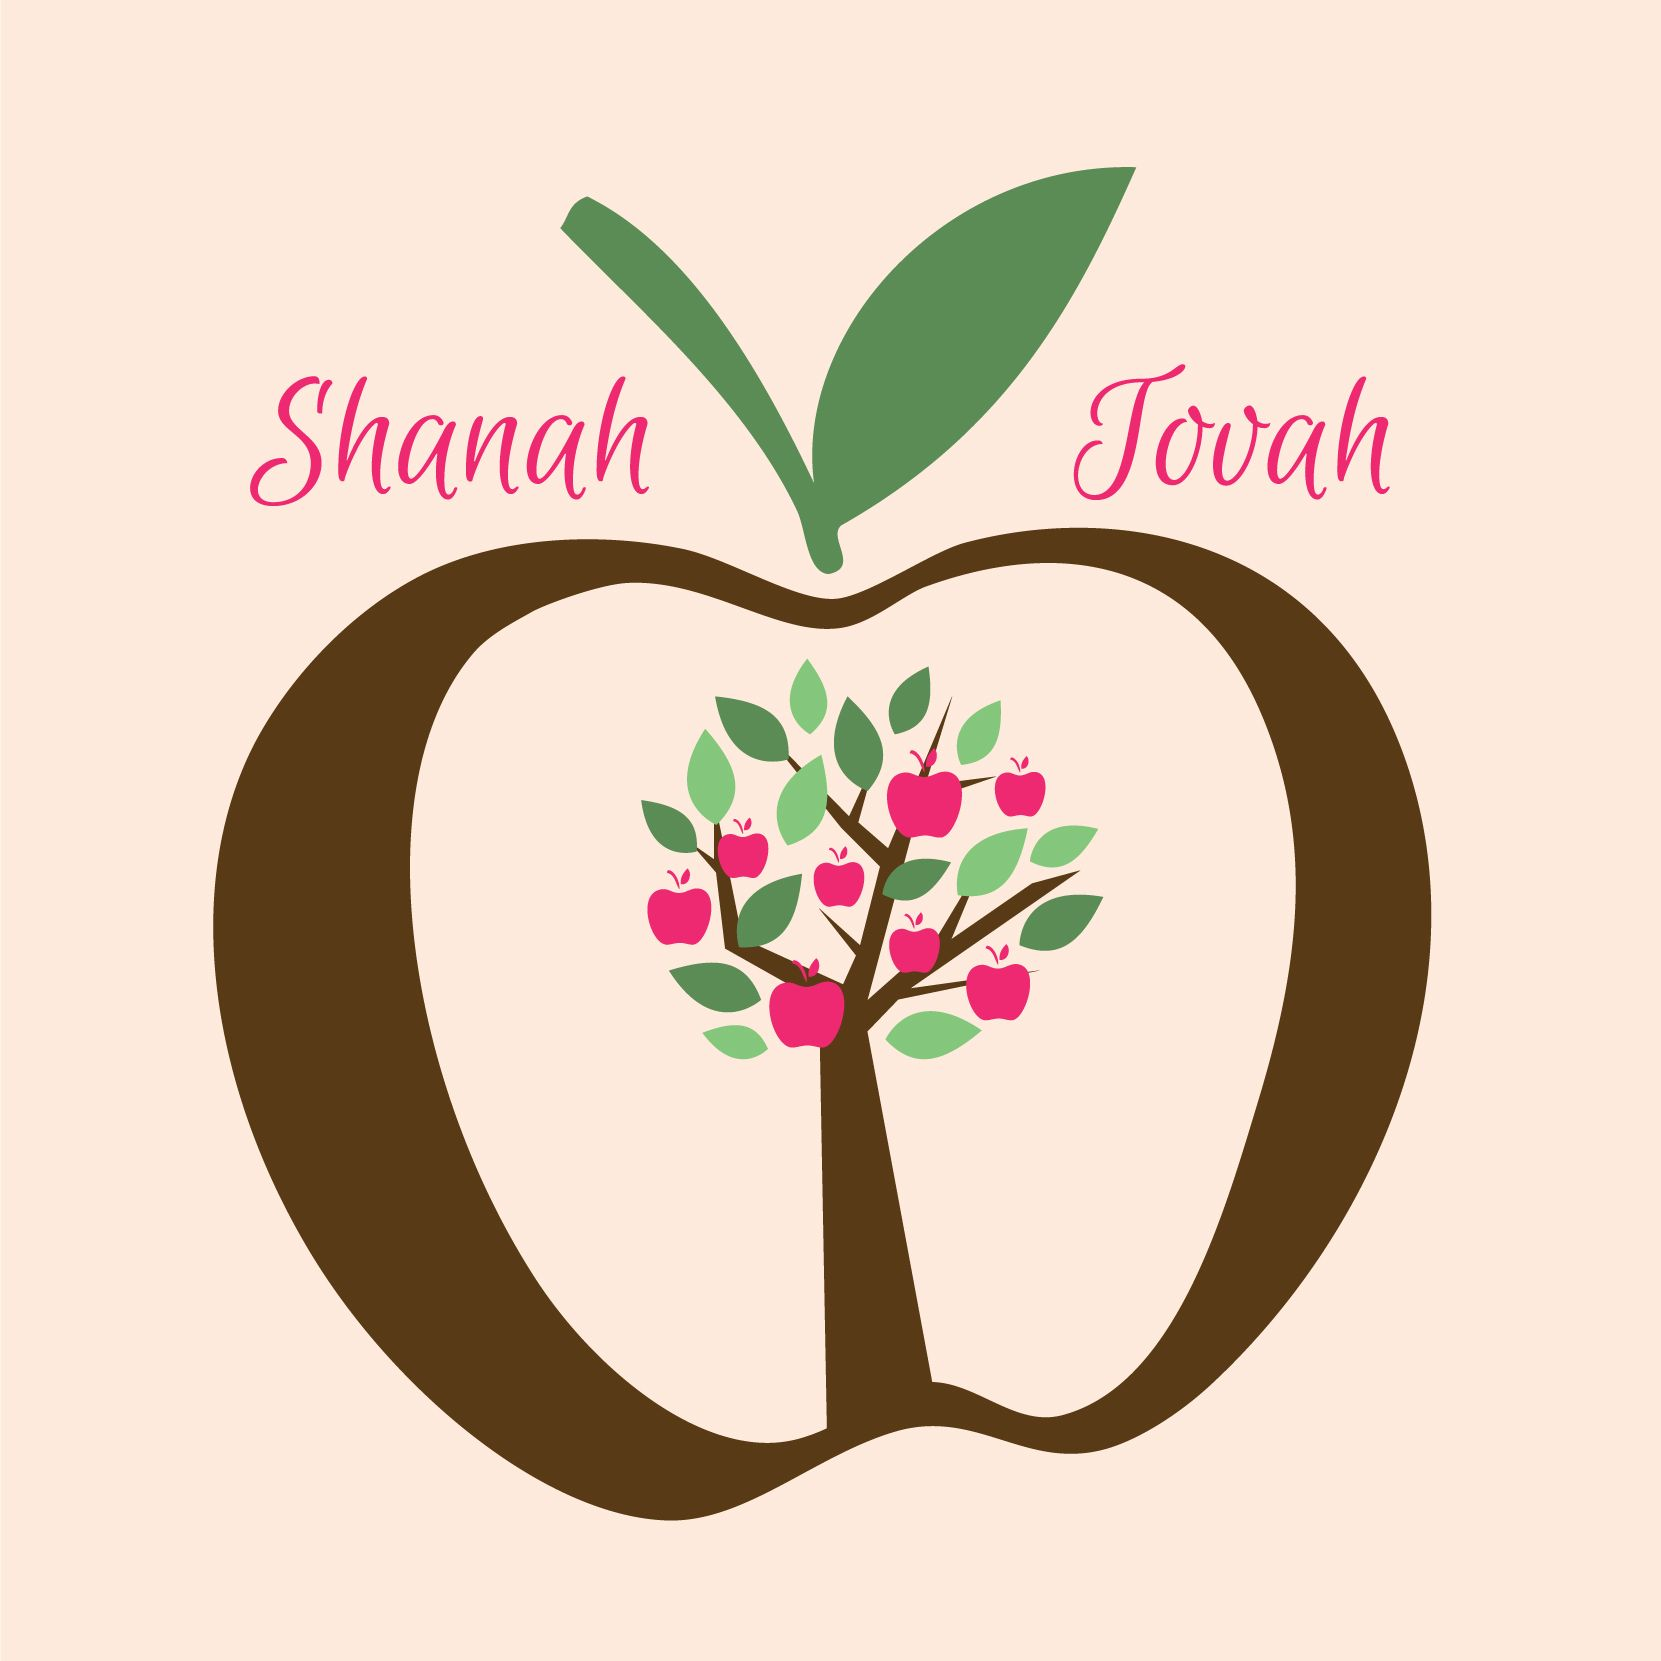 Rosh hashanah greeting cards google search cards holiday rosh hashanah greeting cards google search kristyandbryce Choice Image